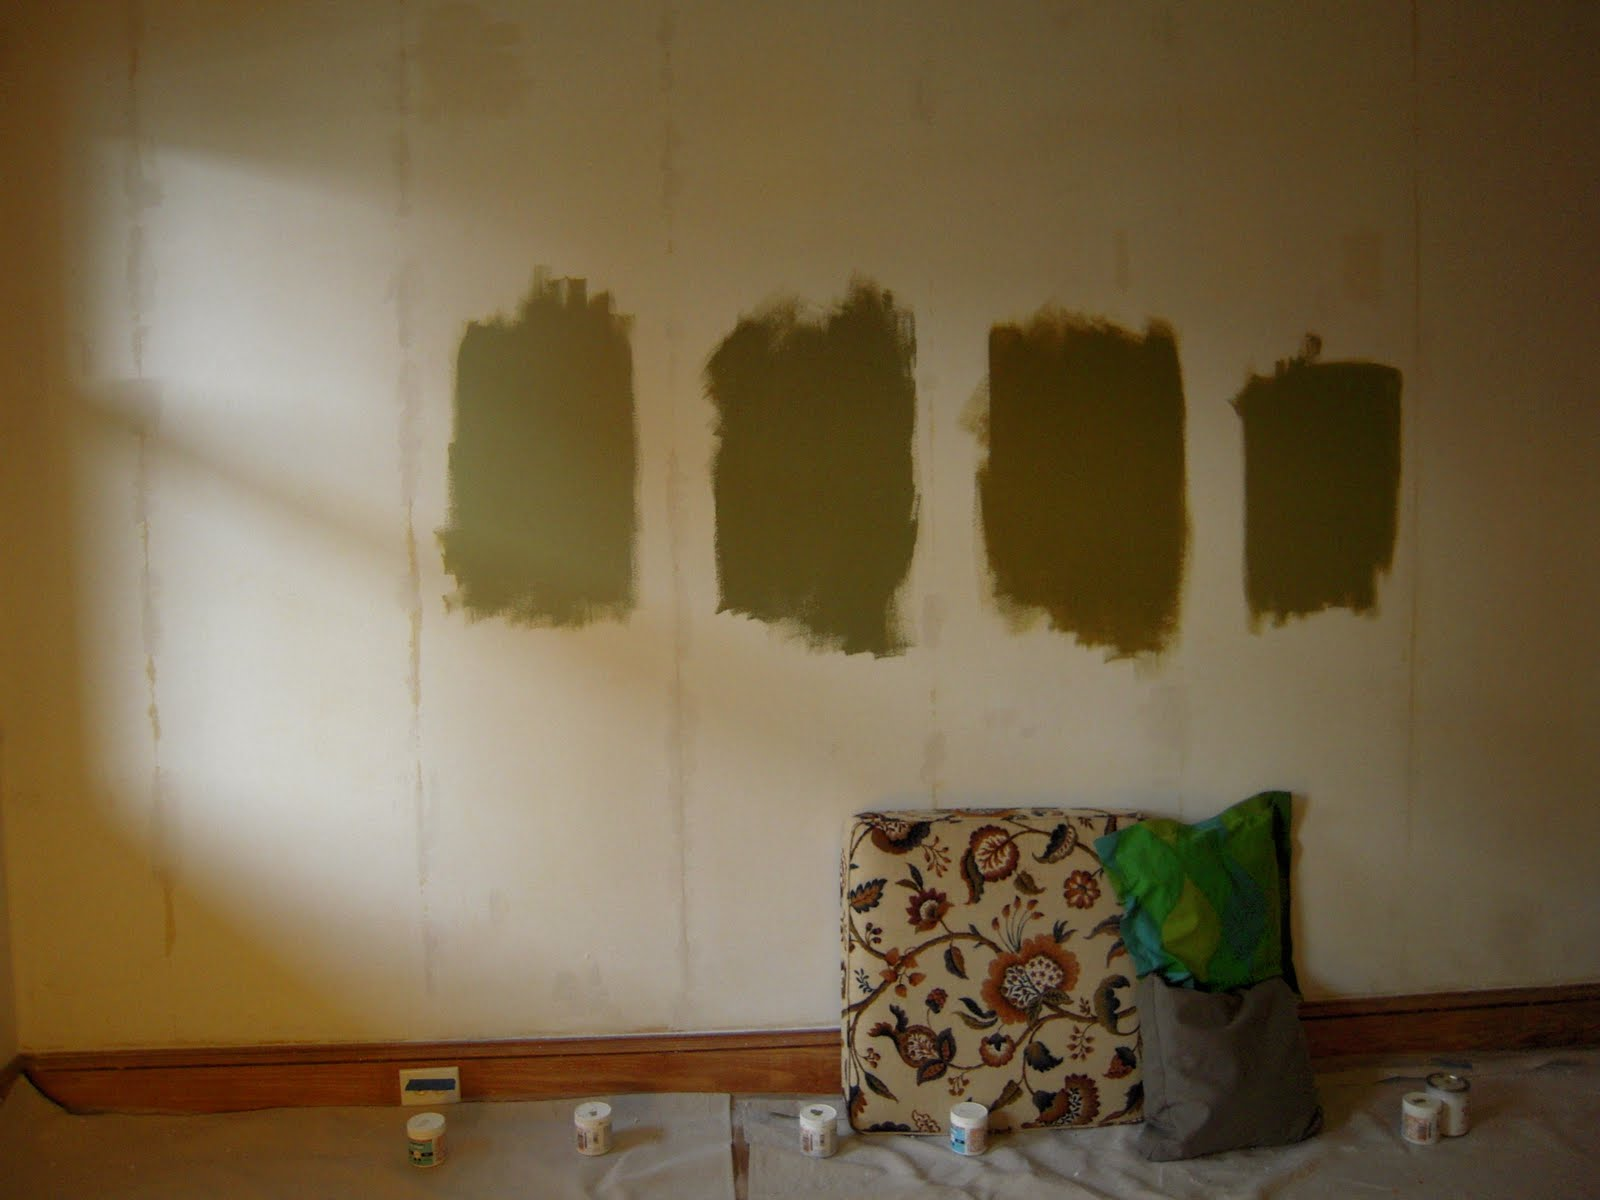 Benjamin moore paint home depot - Green Tea Paint